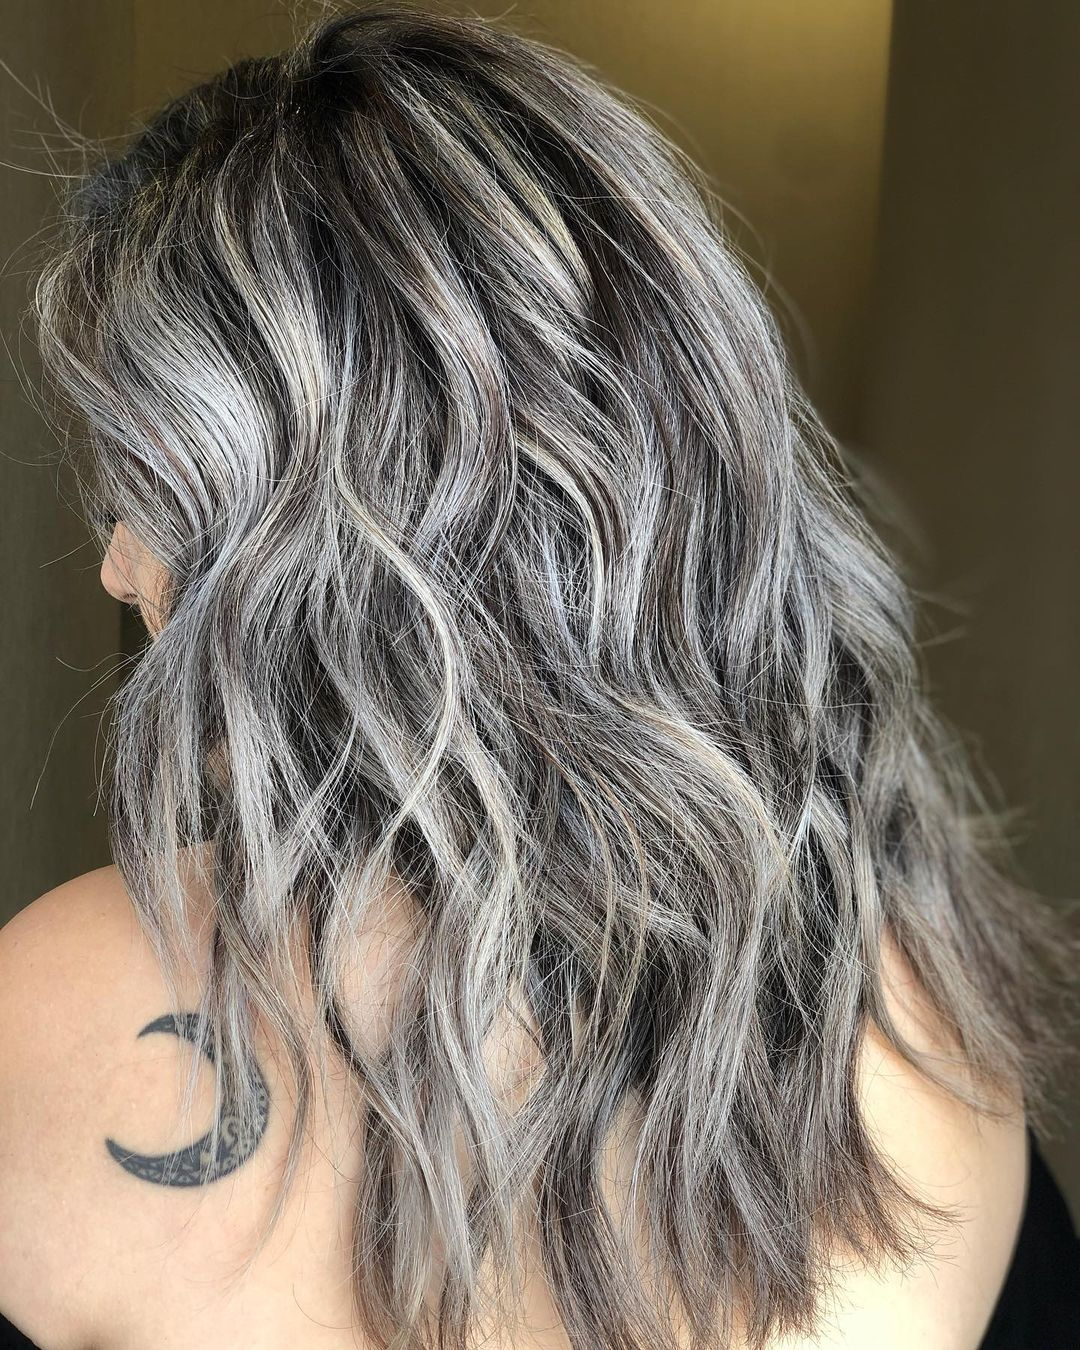 Chocolate Hair with Gray Highlights